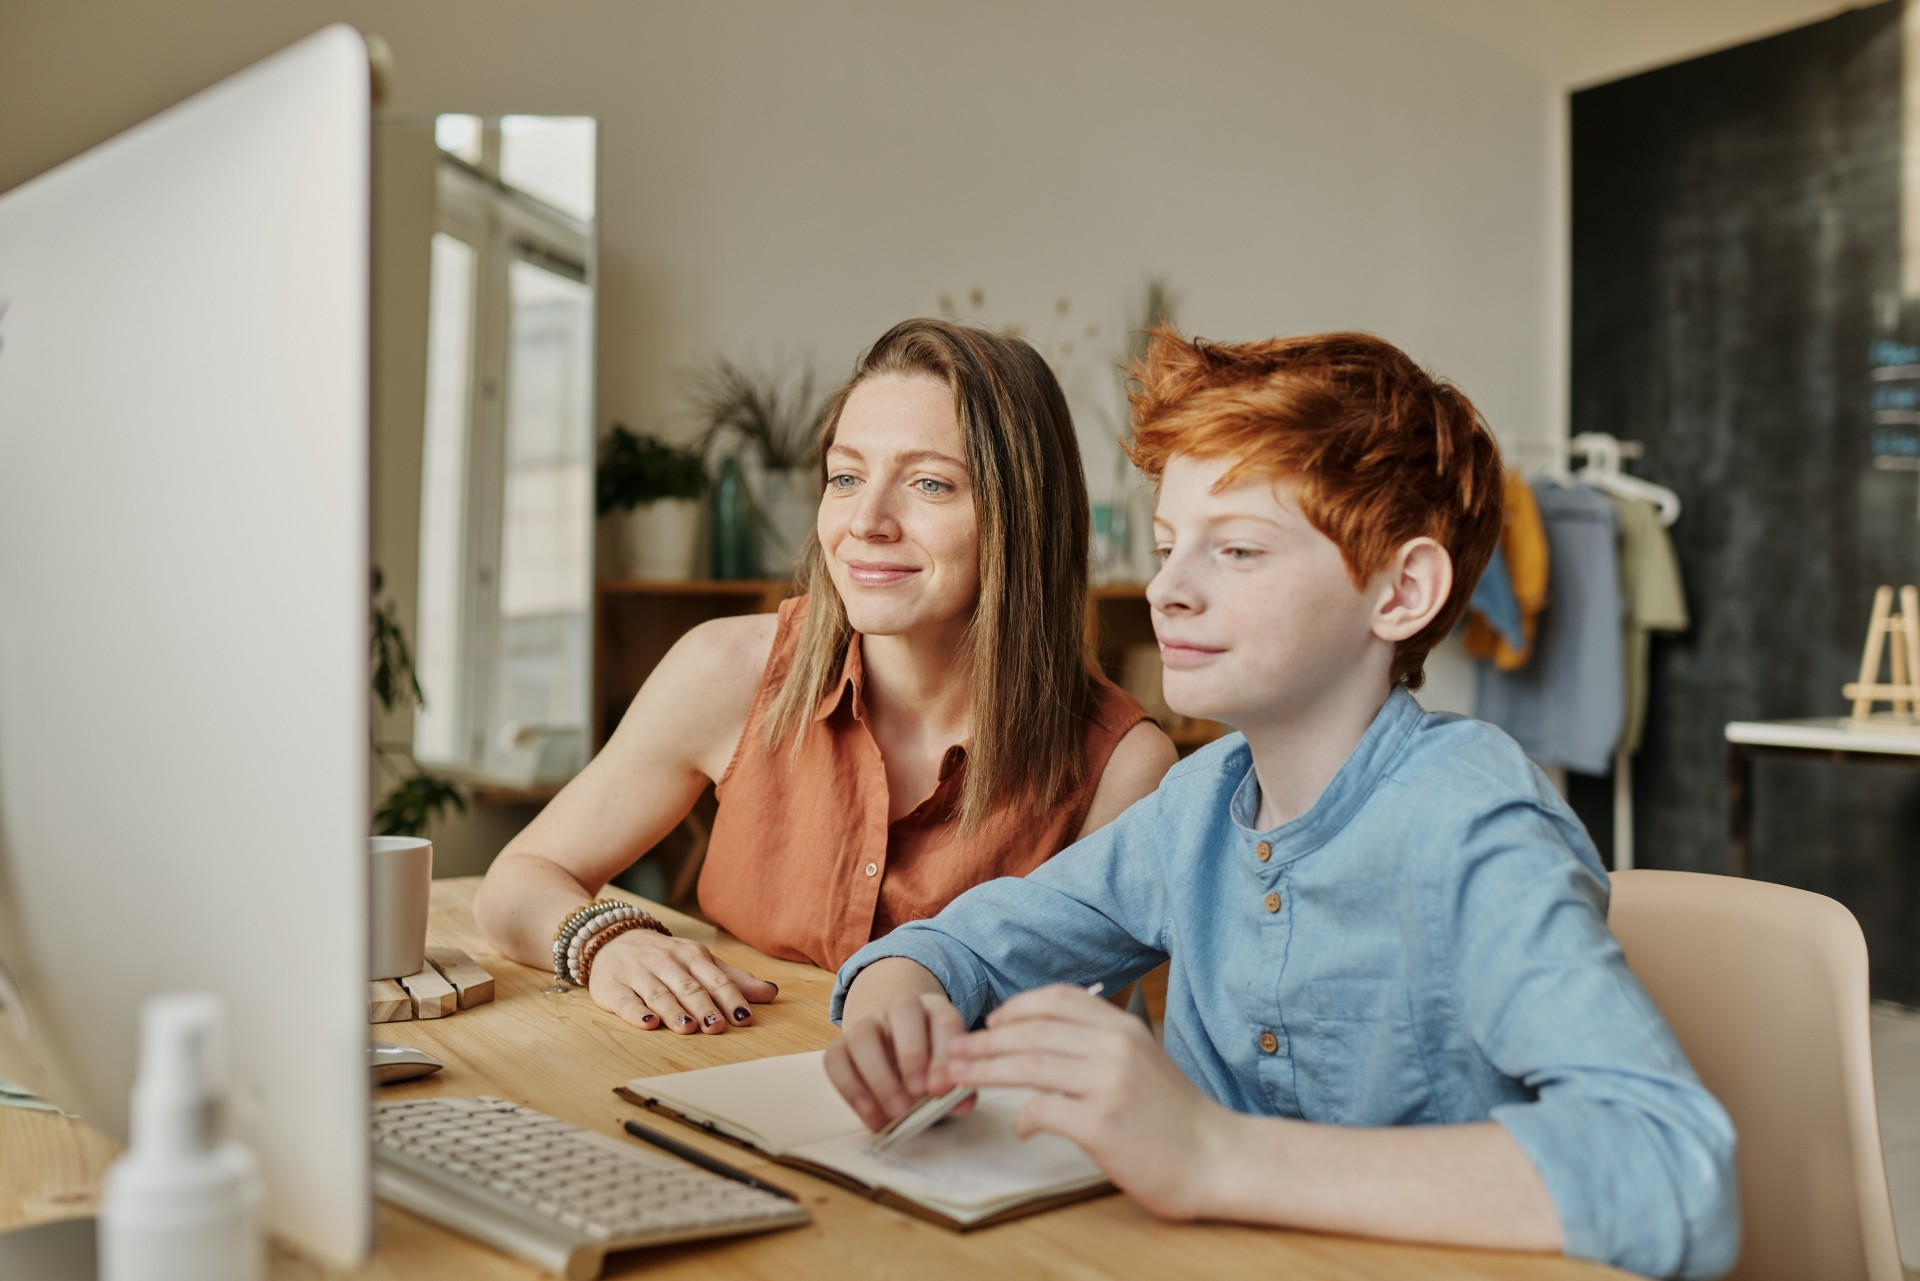 photo-of-woman-and-boy-smiling-while-watching-through-imac-4145350